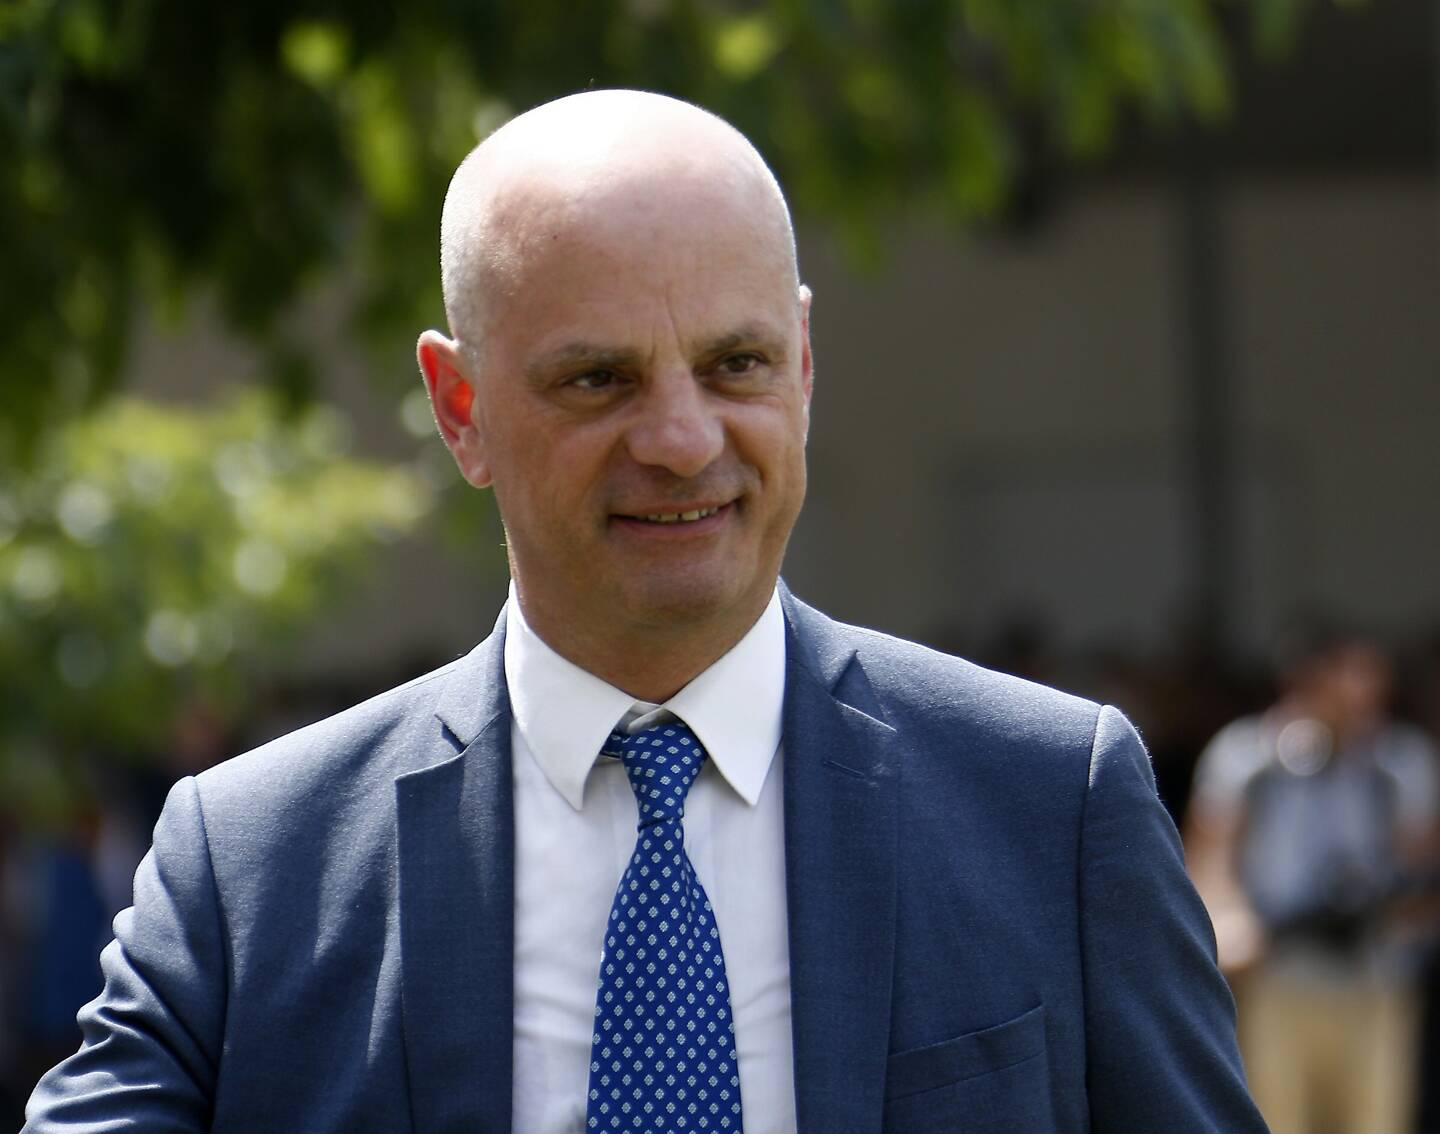 Jean-Michel Blanquer, ministre de l'Education nationale, de la Jeunesse et des Sports, dans le Var en août 2019 (illustration).